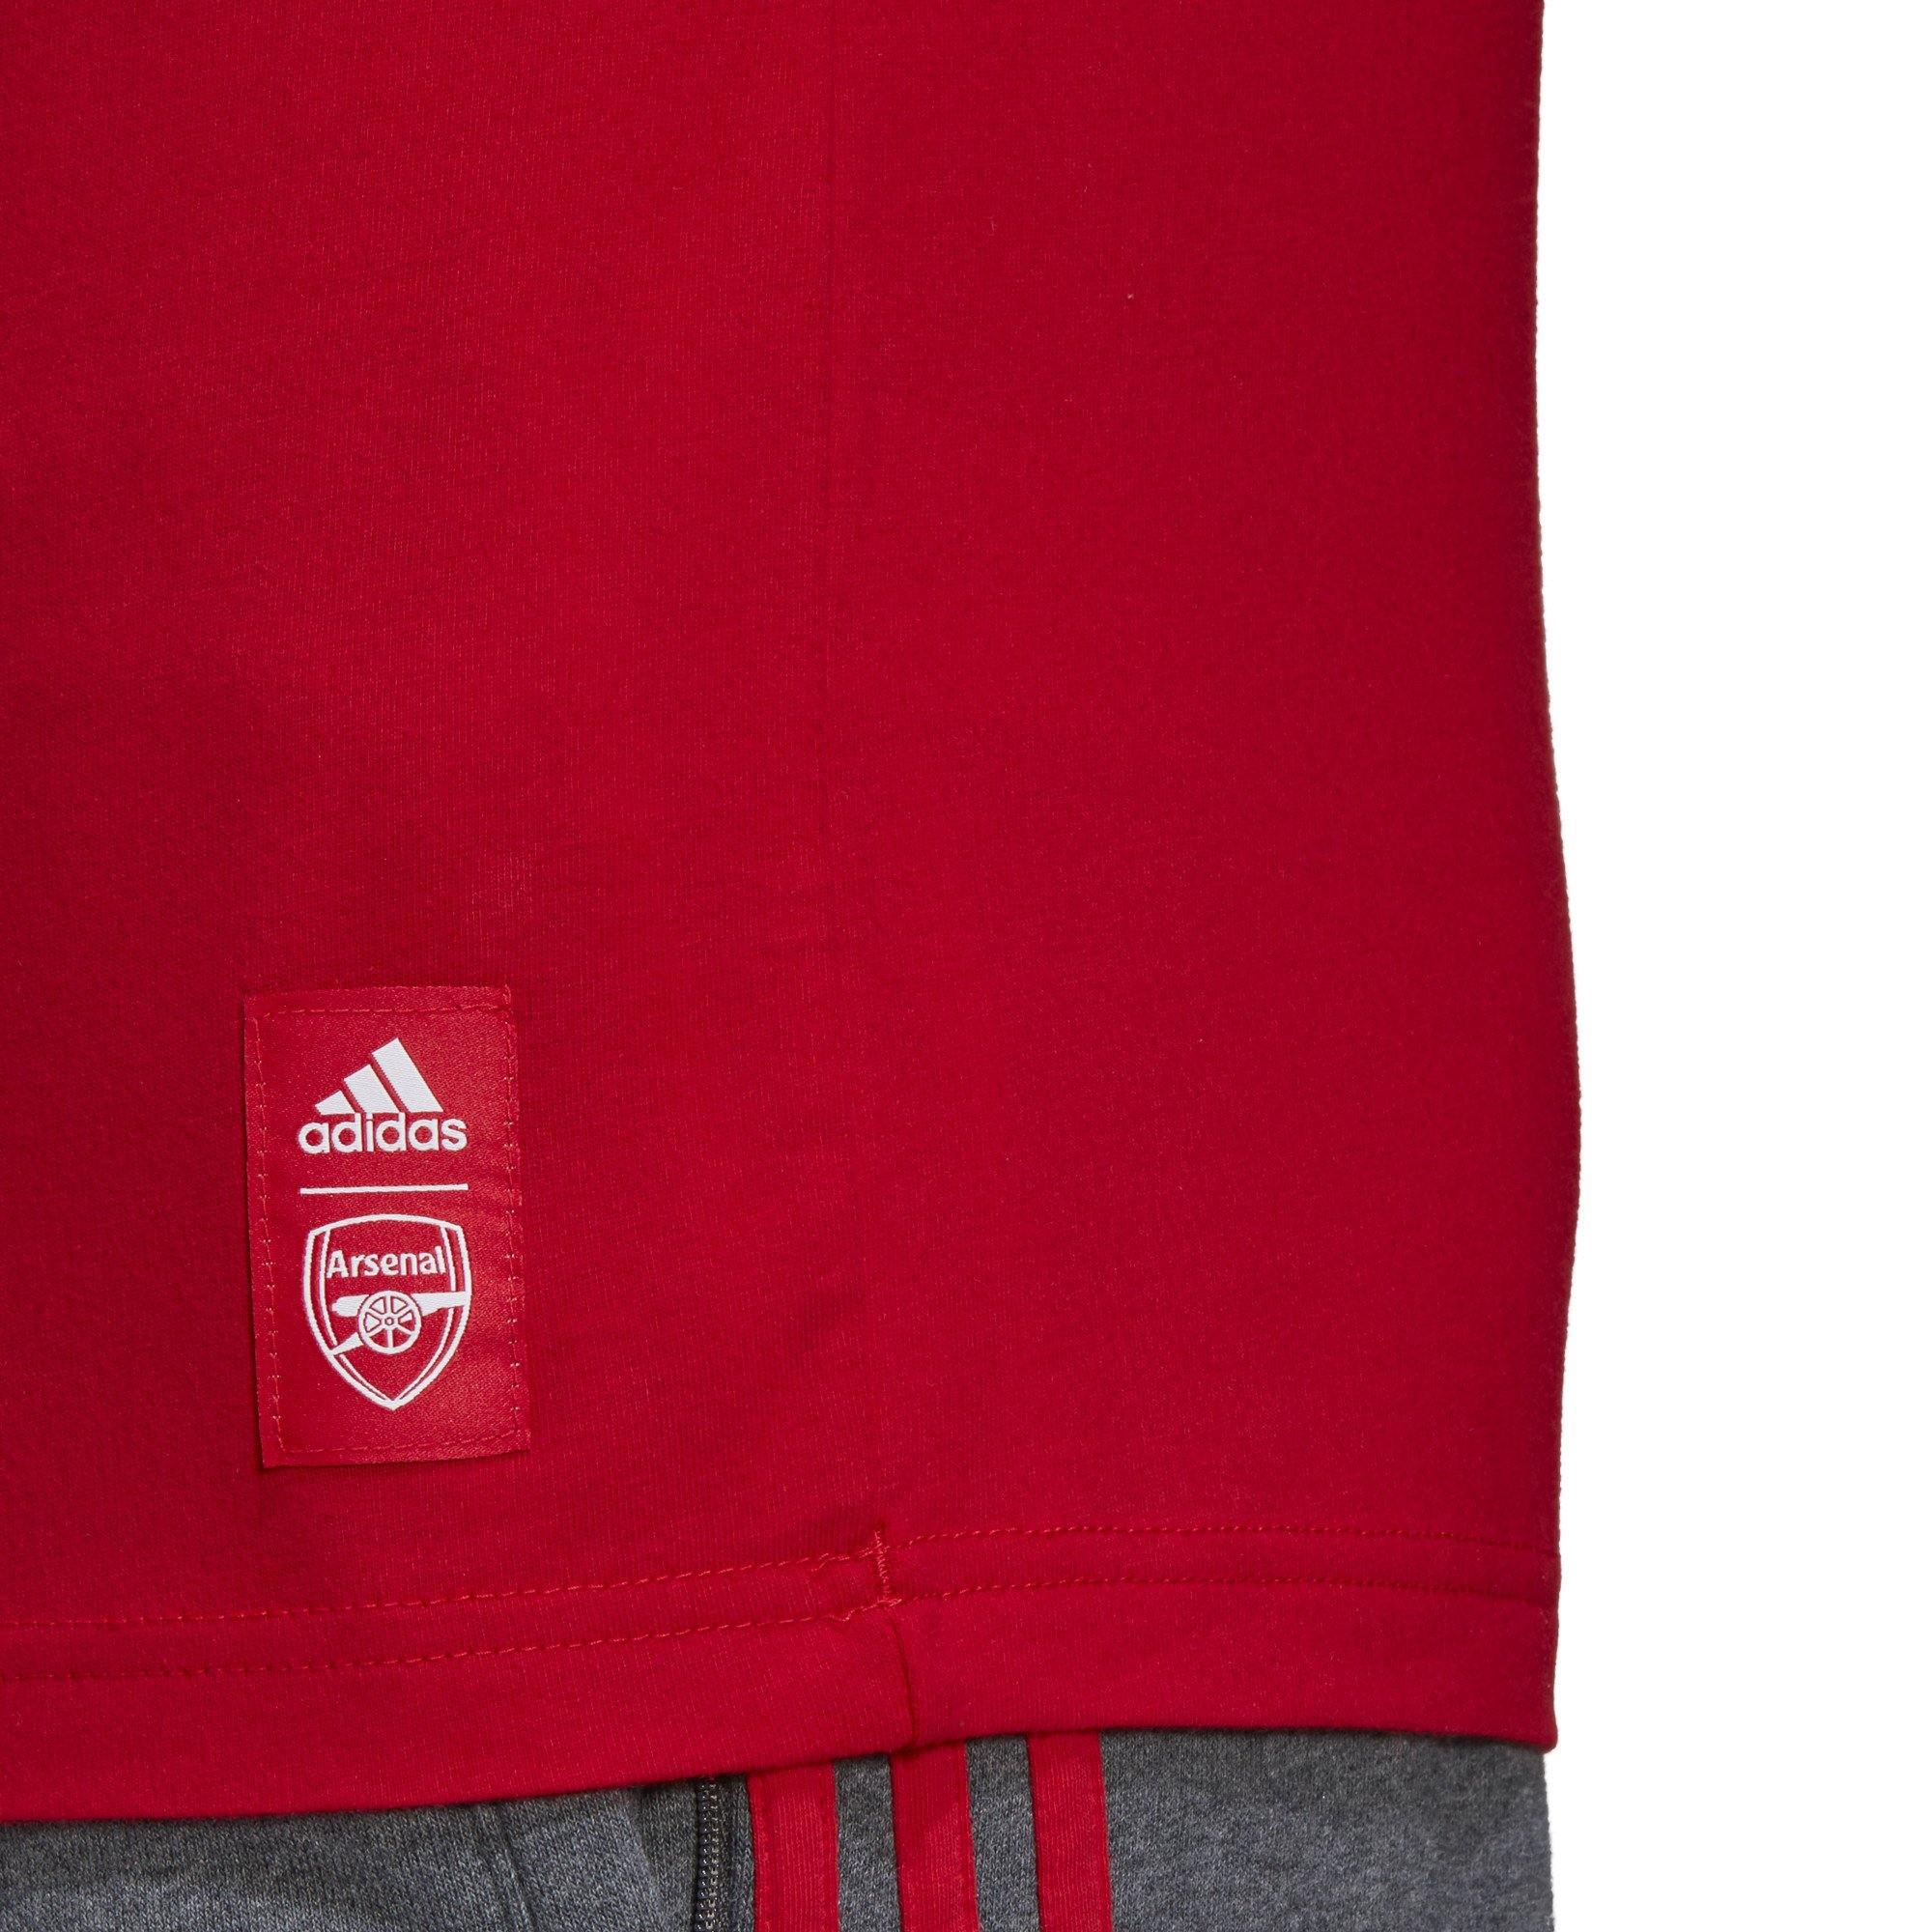 Arsenal DNA adidas póló